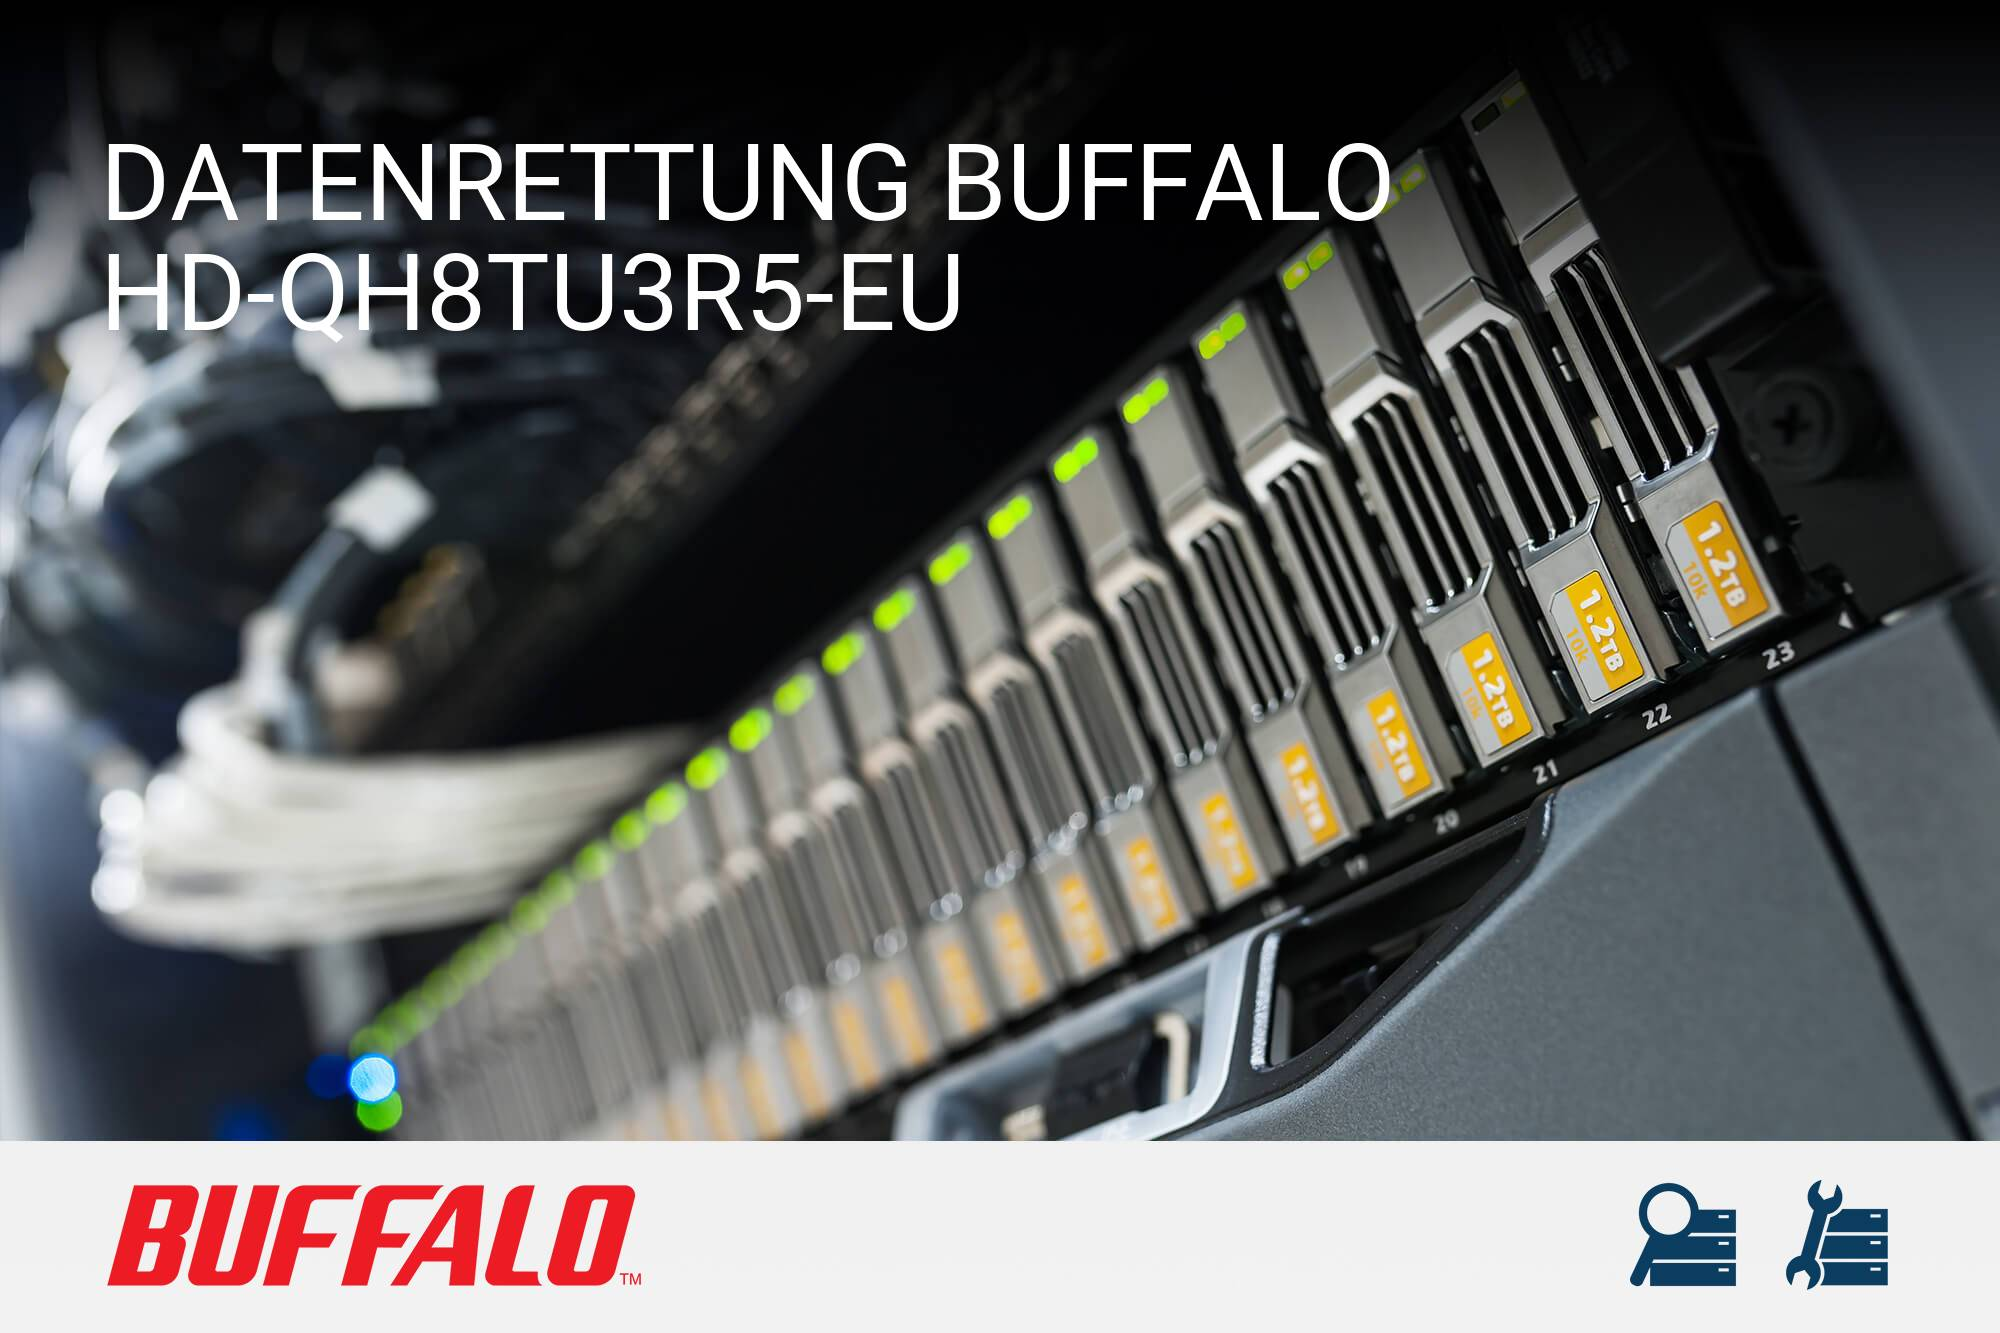 Buffalo HD-QH8TU3R5-EU